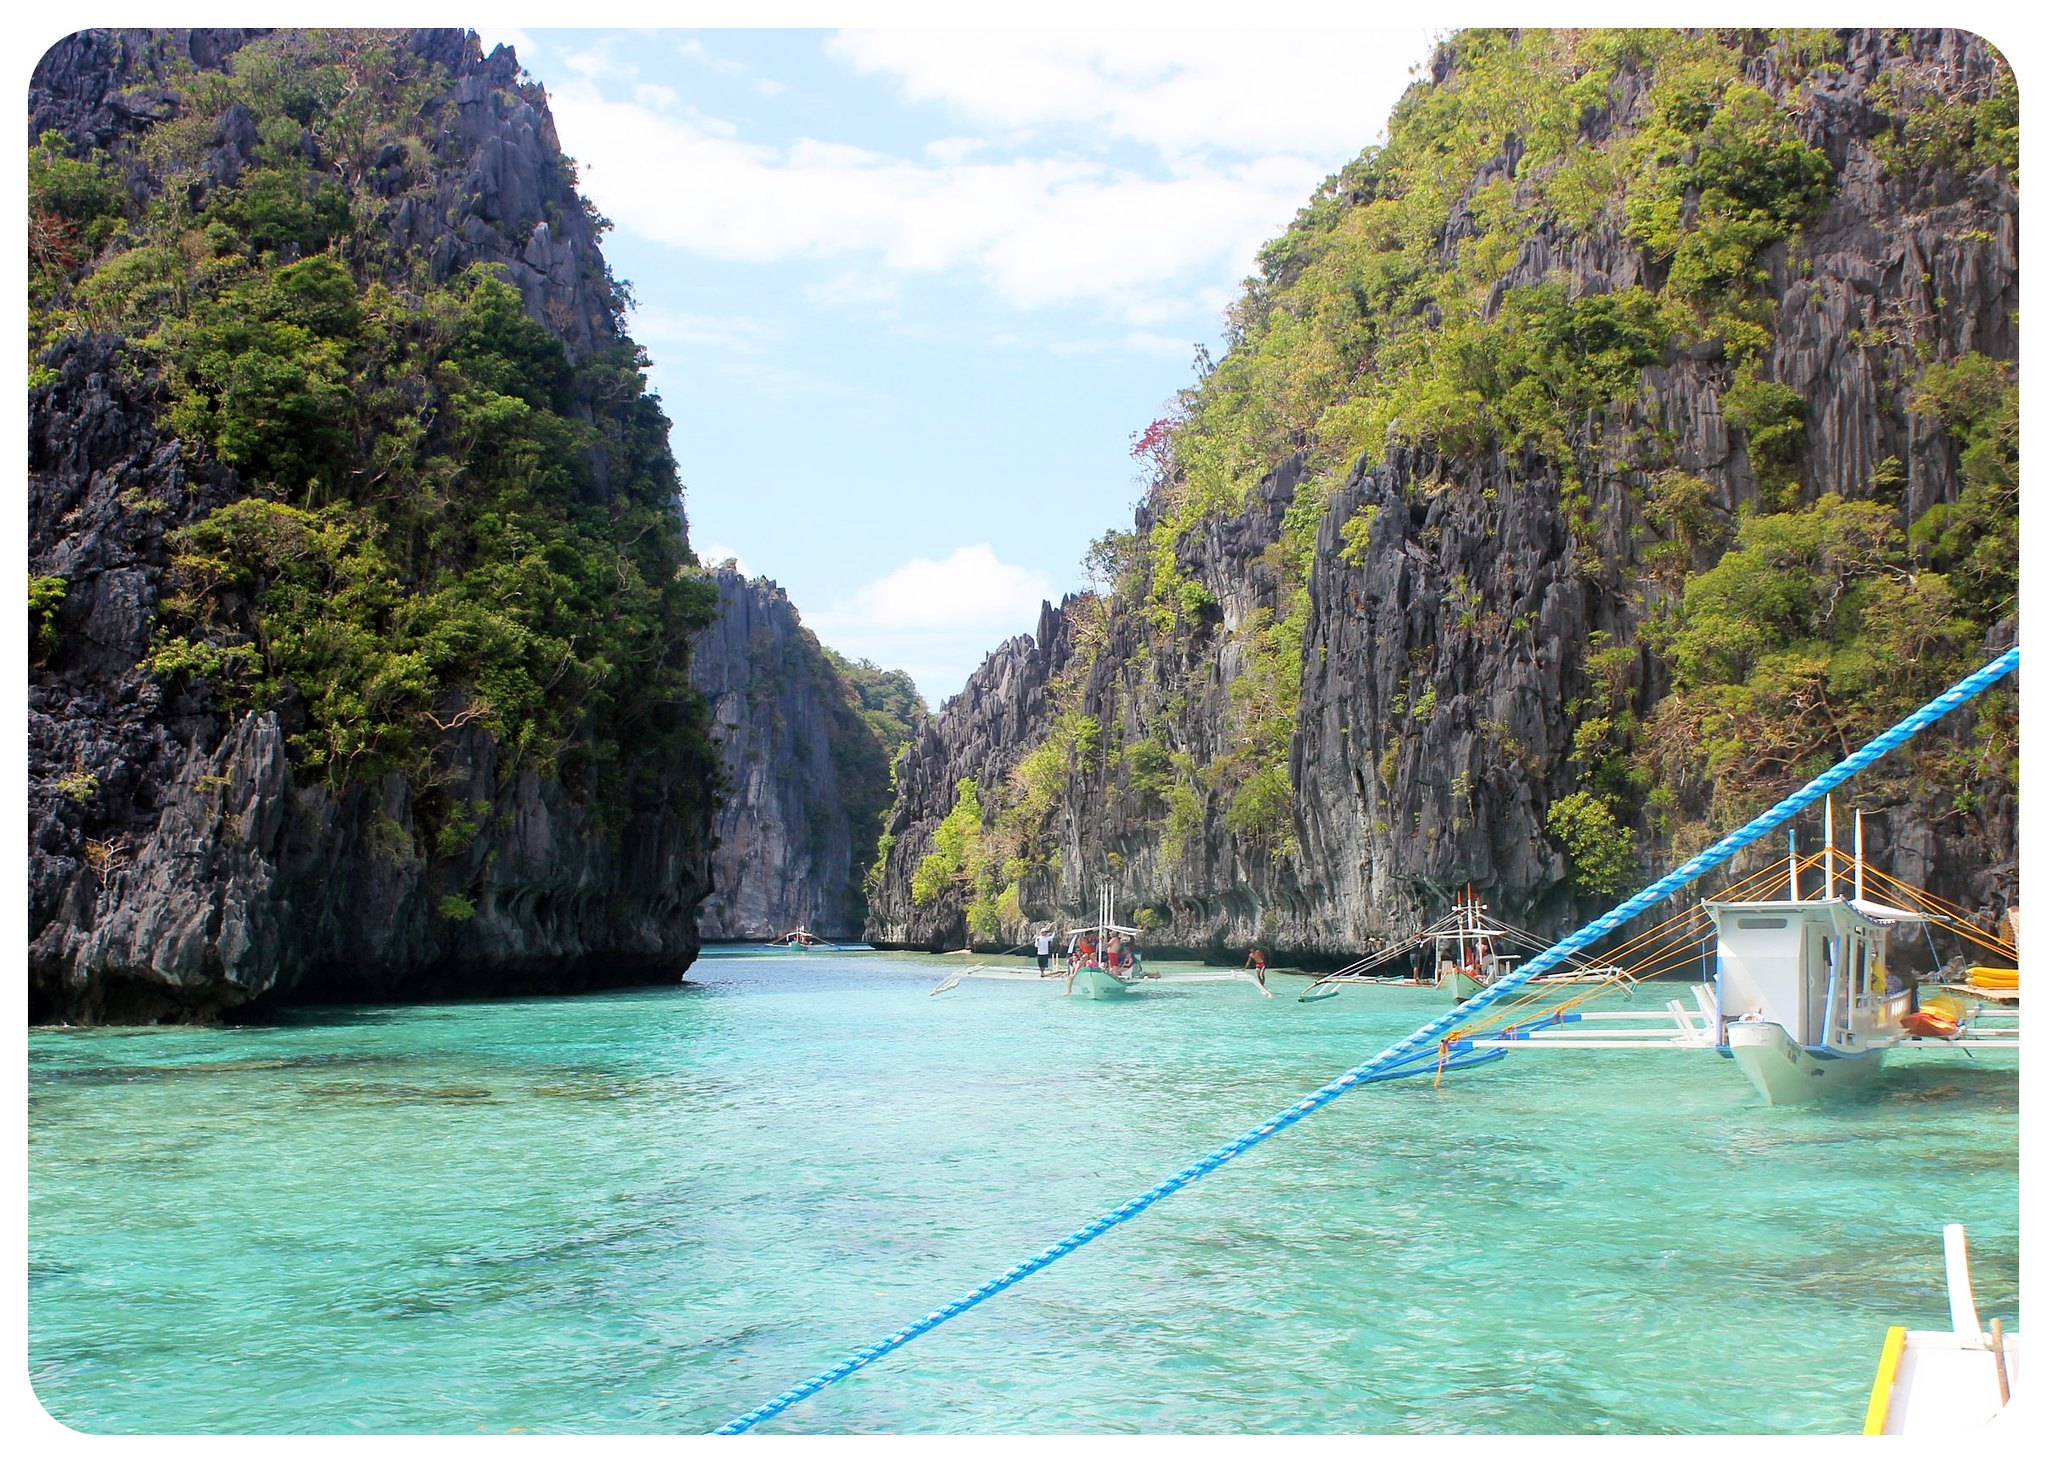 Read more about my time in Palawan and all the practical information you might want to know before a trip to El Nido - how to get there, where to stay, where to eat, what to do.